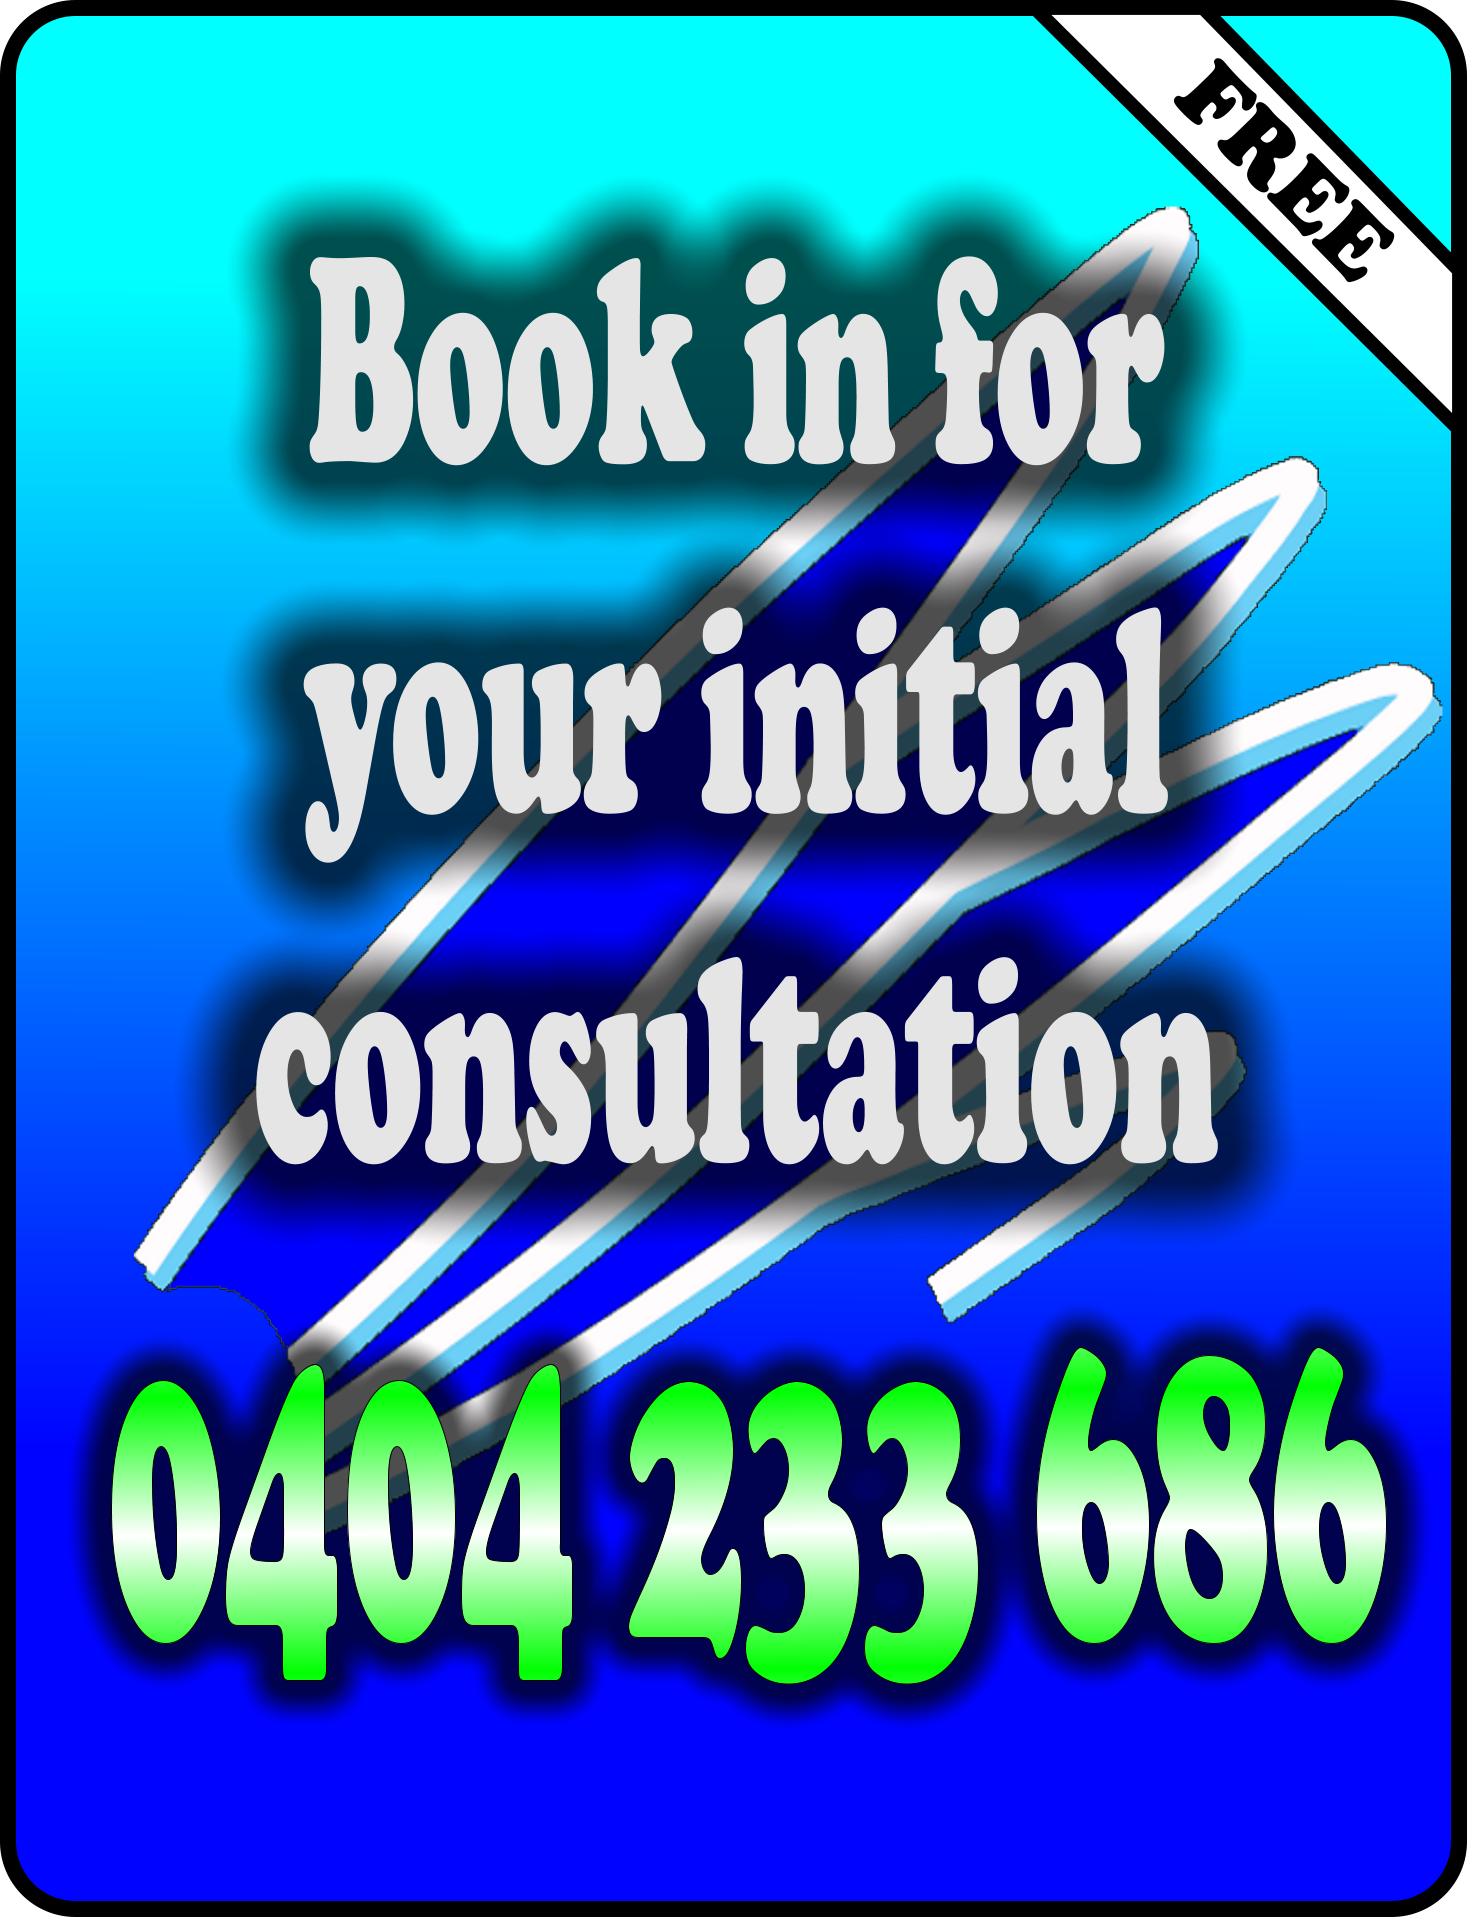 Book in for your initial consultation